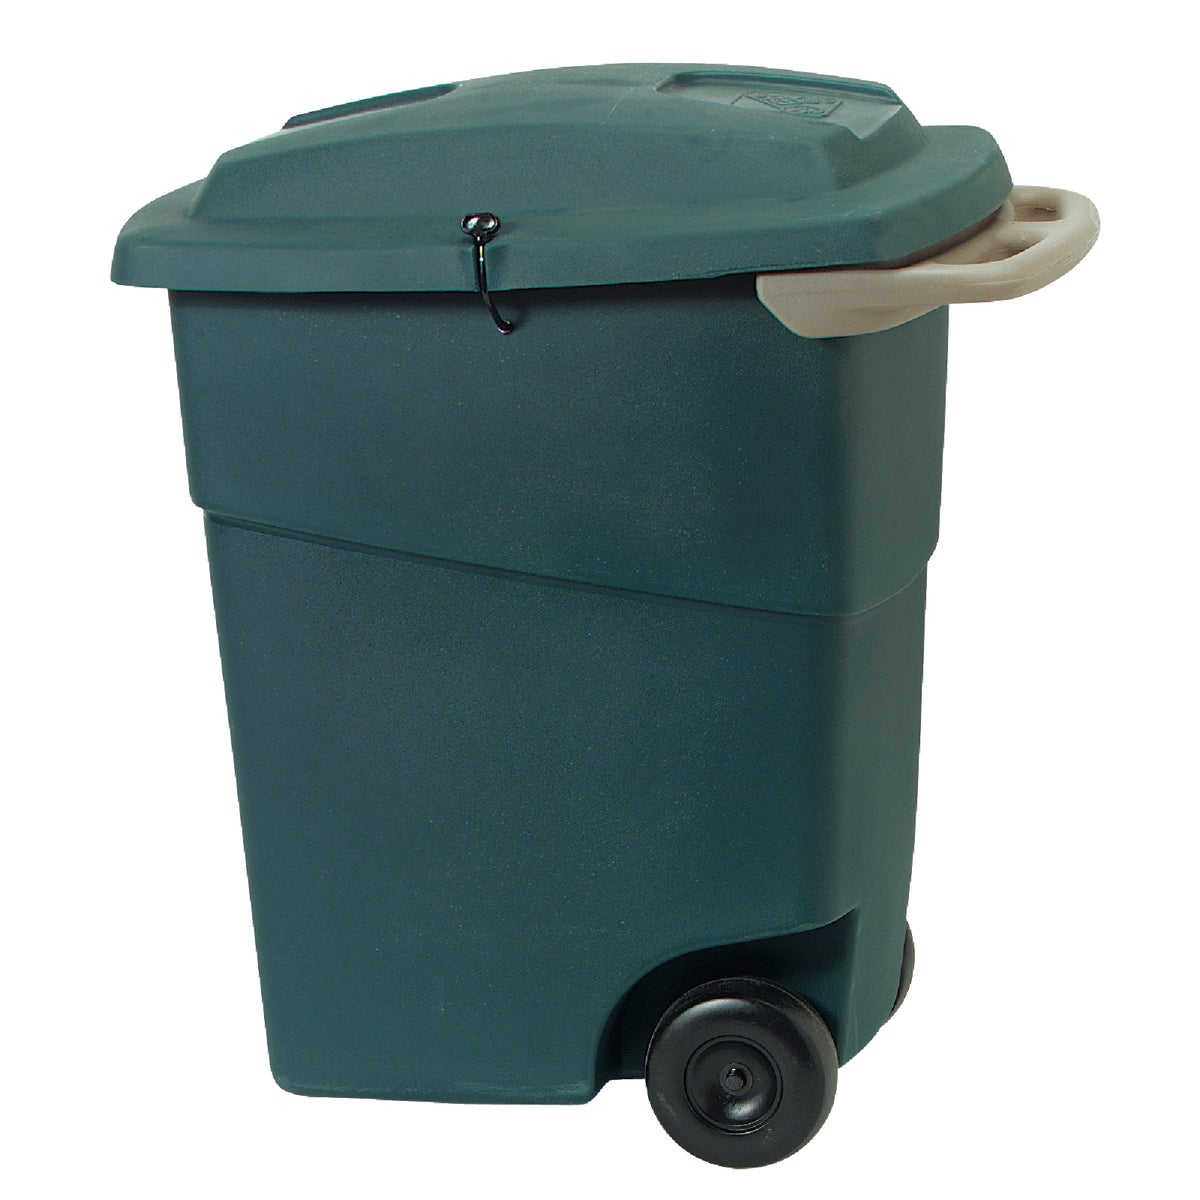 60GAL TRASH CAN - 566000 by Step 2 Corp